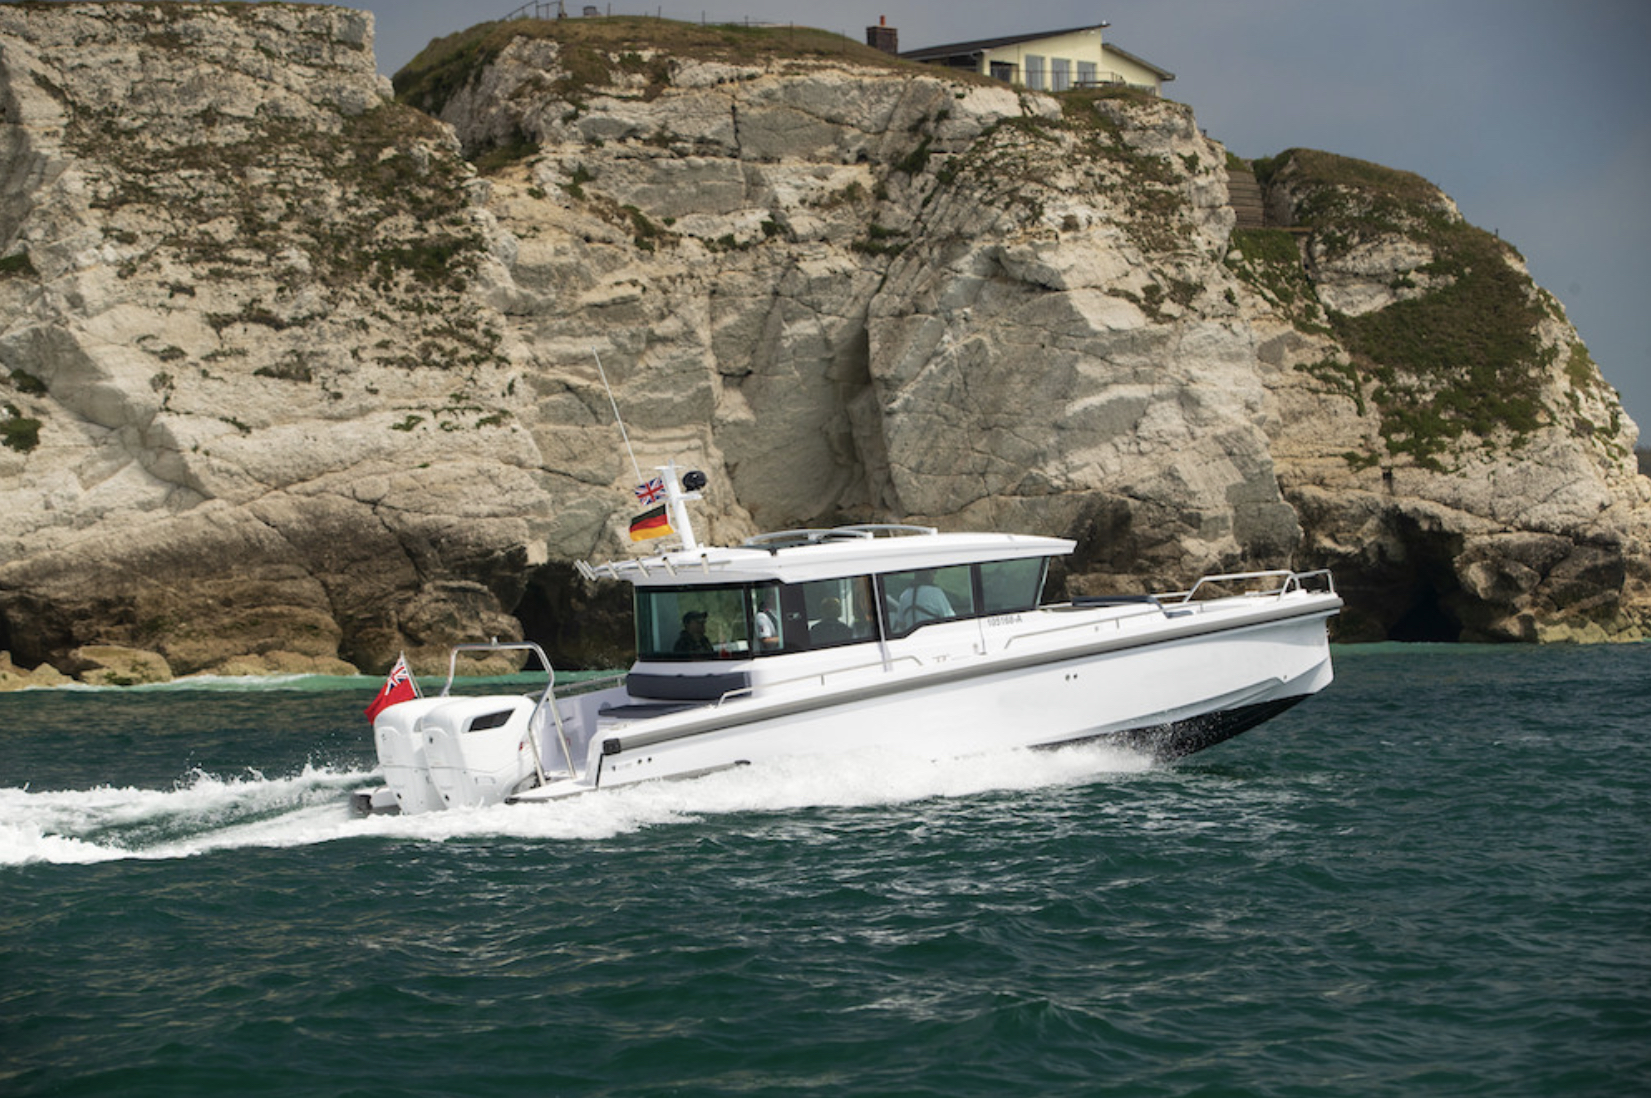 Cox Marine partners with Axopar and Ribco at Monaco Yacht Show to demonstrate the benefits of Cox's diesel outboards